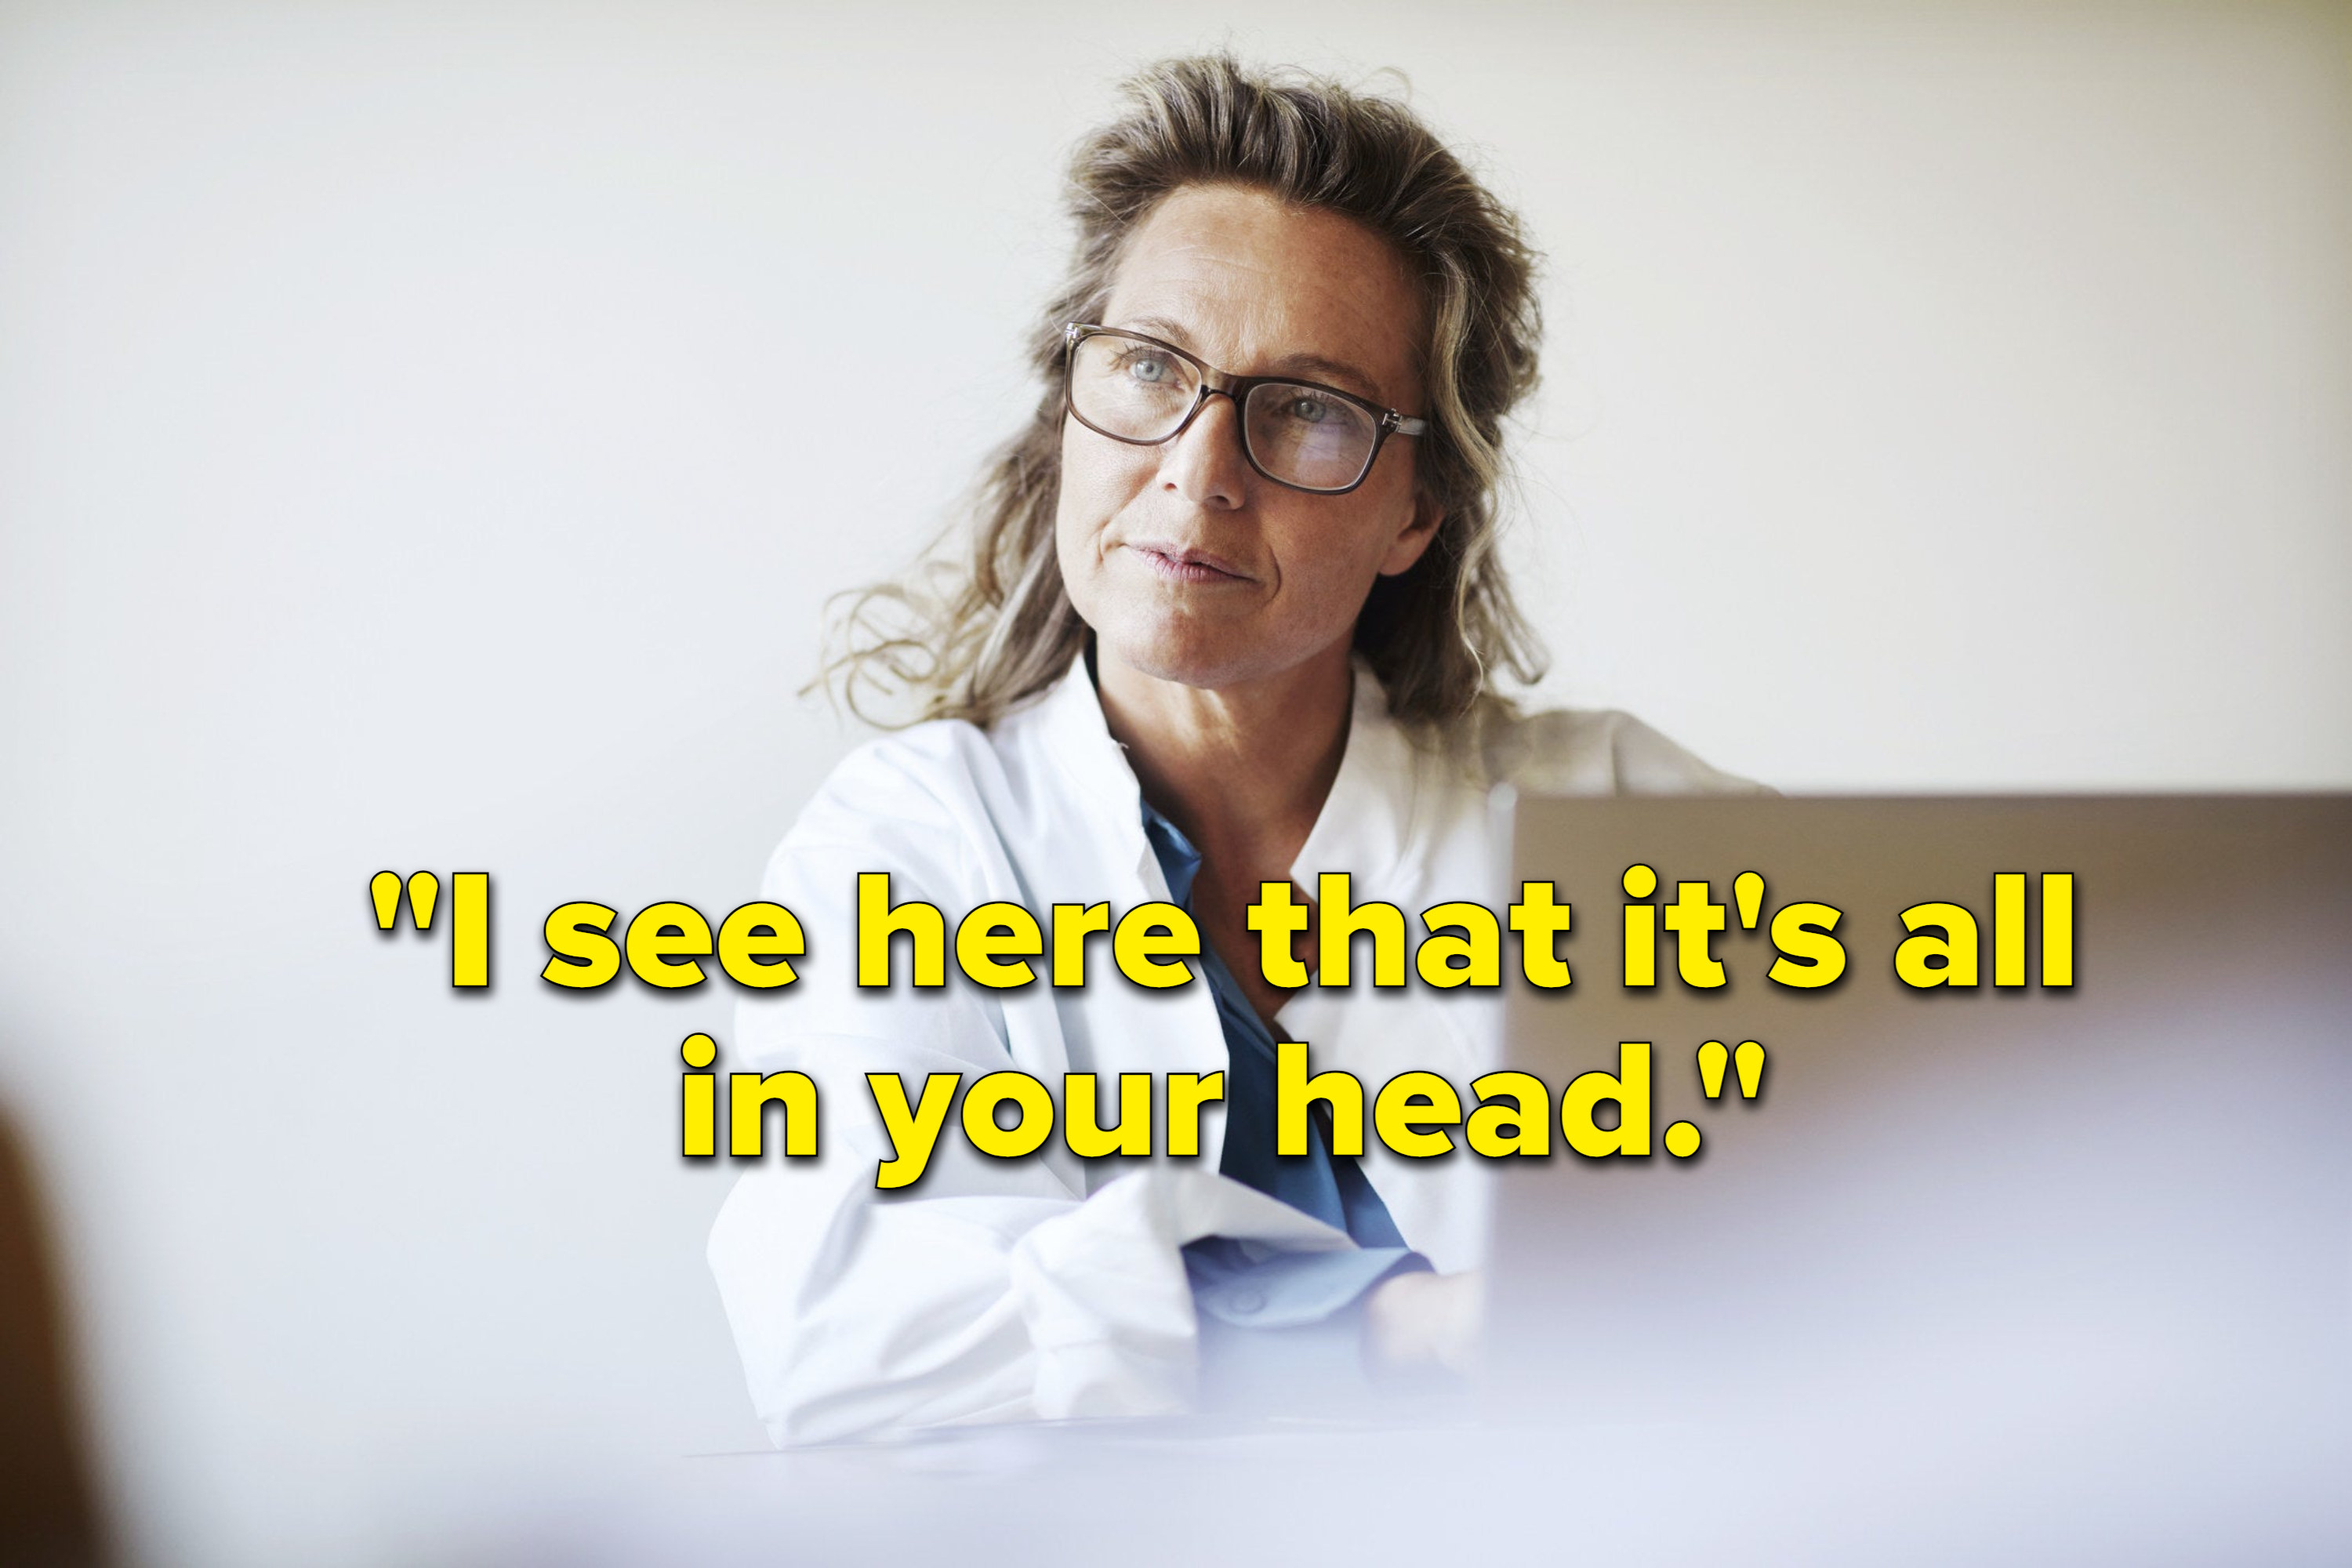 An image of a doctor.